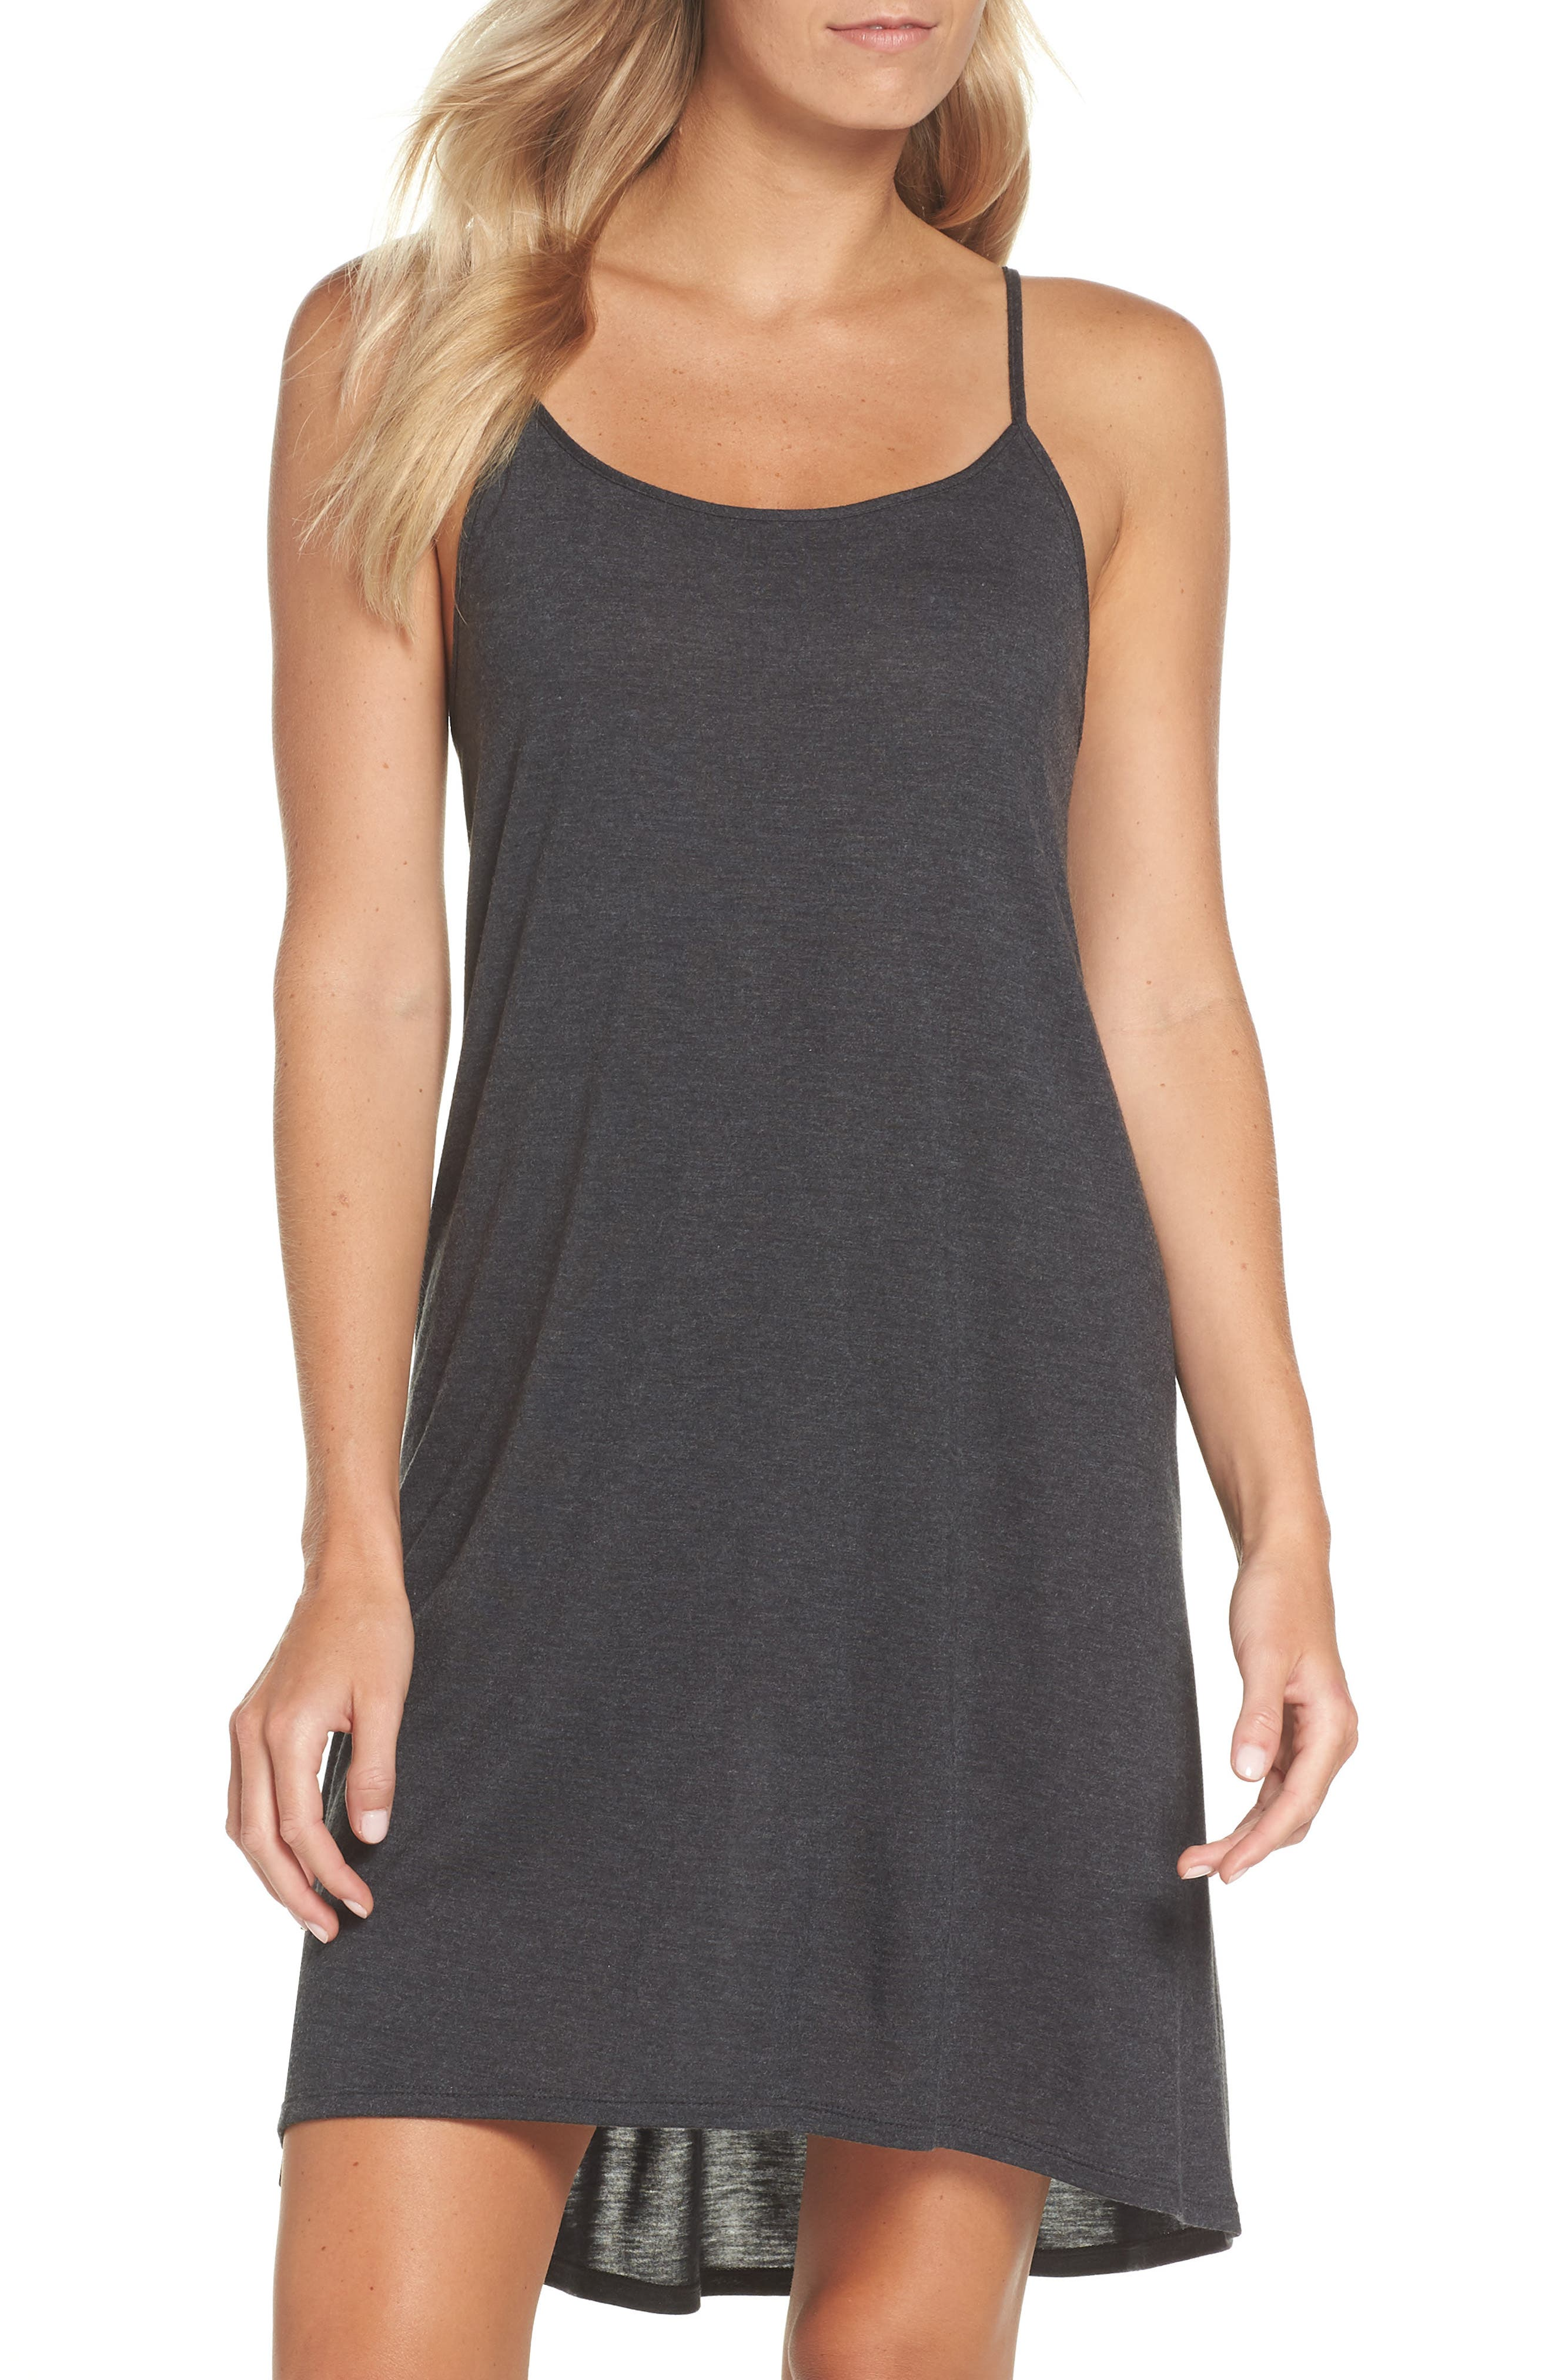 Heather Tees Chemise,                         Main,                         color, HEATHER GRANITE